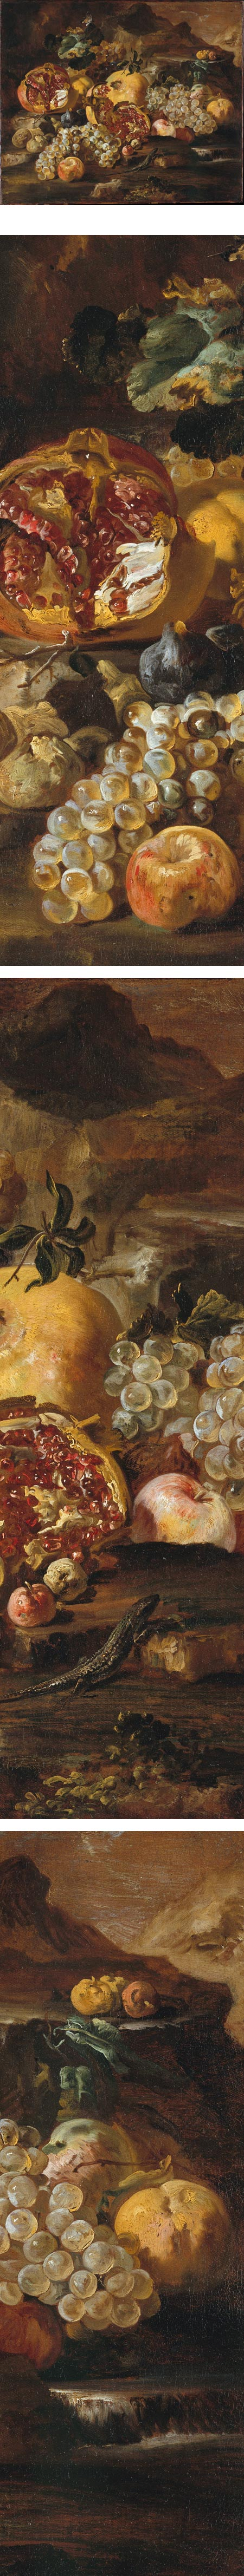 Pomegranates and Other Fruit in a Landscape, Abraham Brueghel